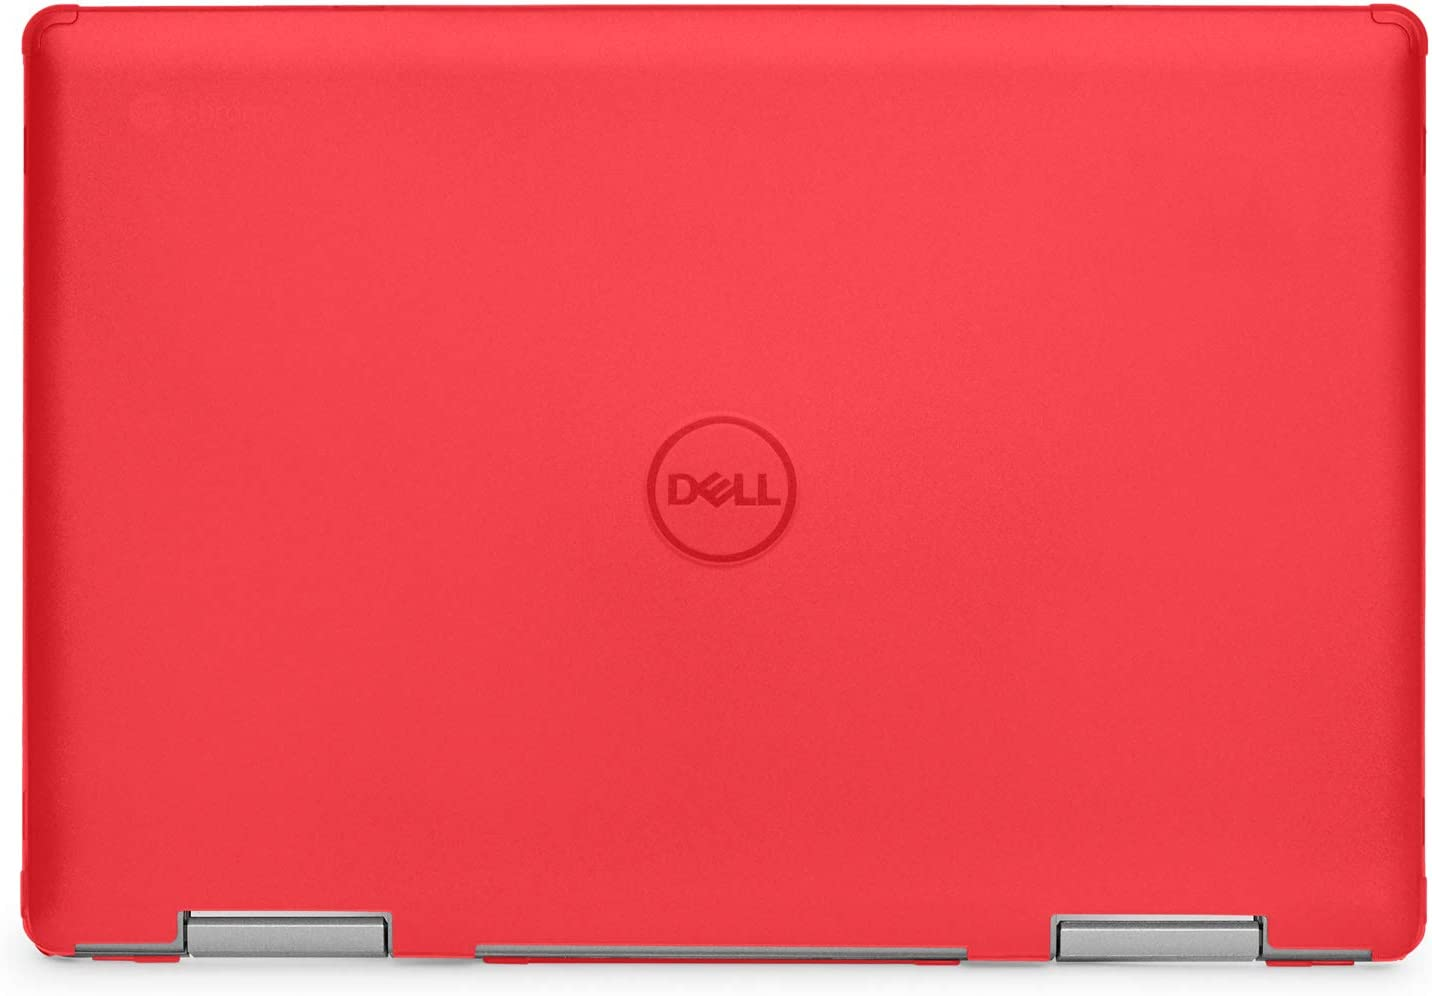 """mCover Hard Shell Case for 14"""" Dell Inspiron 14 5481 2-in-1 Series Laptop Computers (NOT Compatible with Other Dell Inspiron Series) (Red)"""